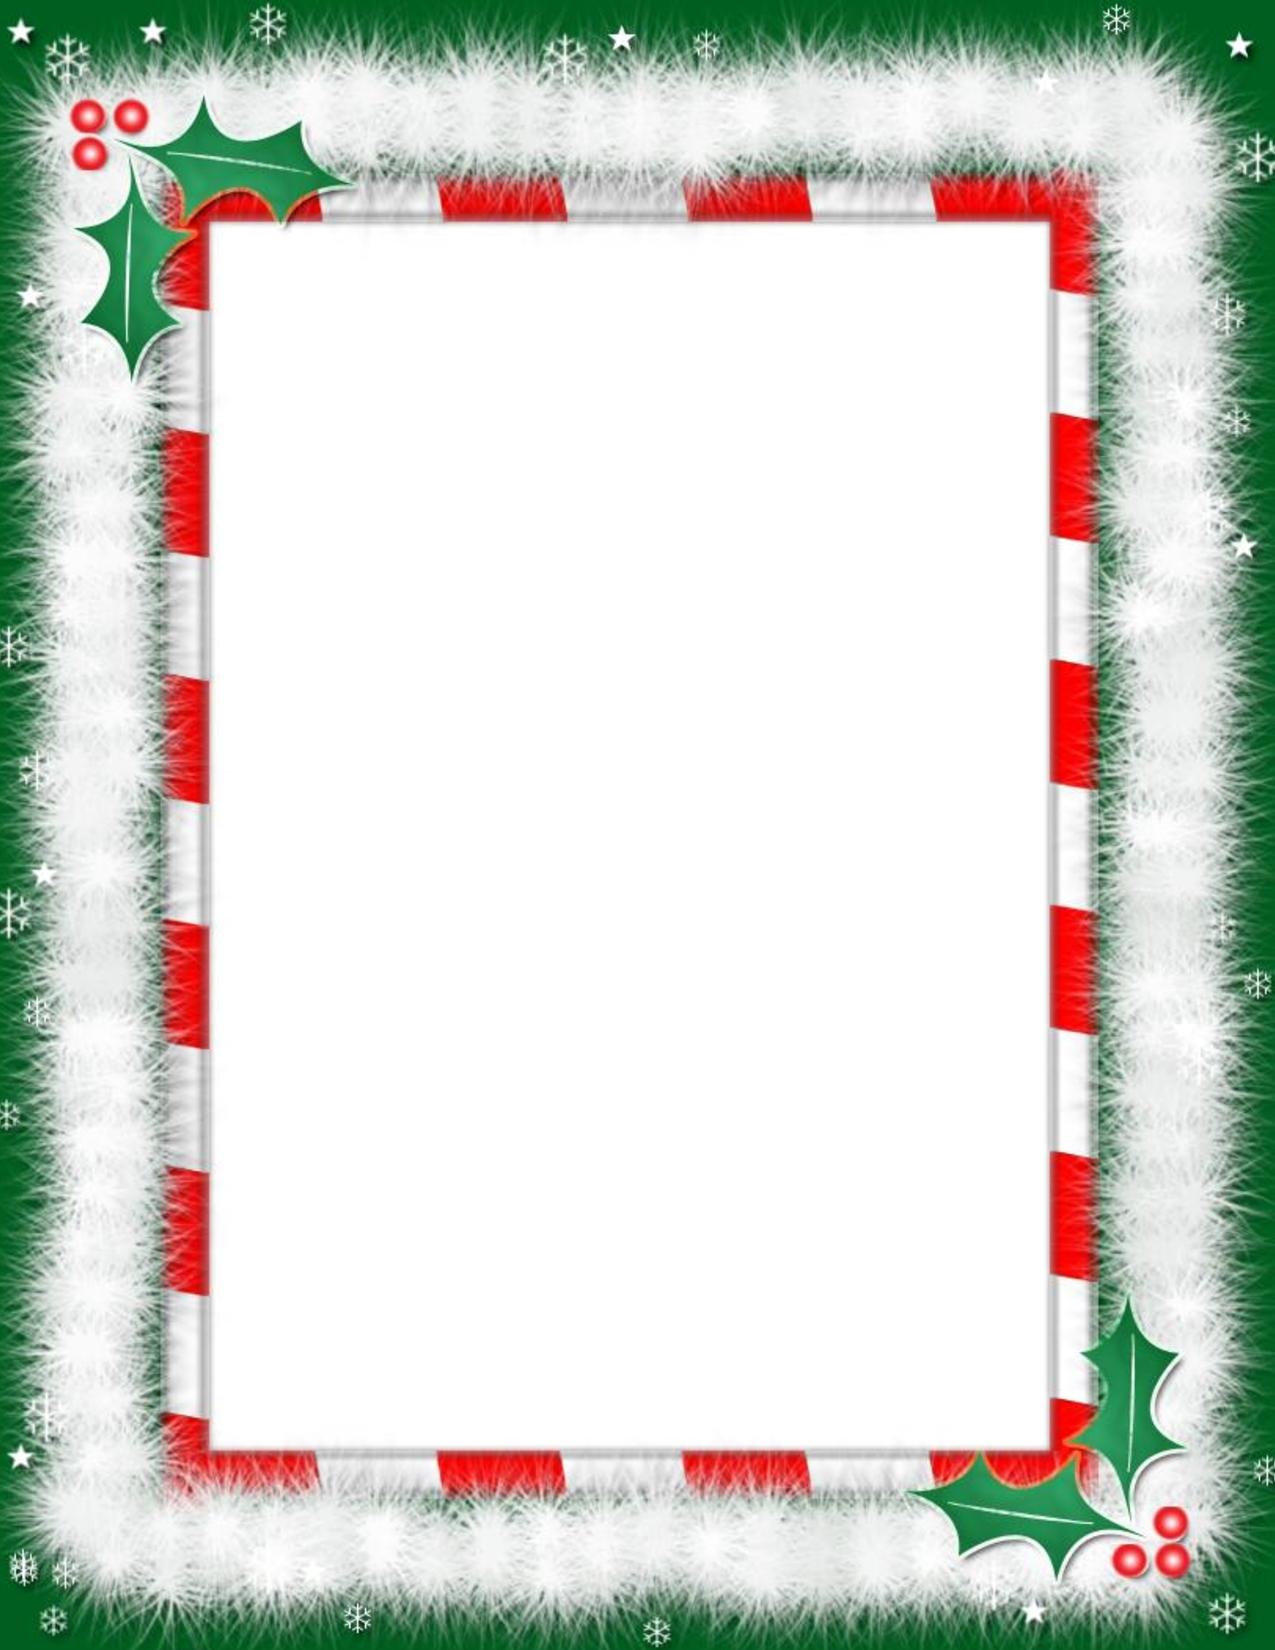 Christmas Border for Free Download freeuse stock